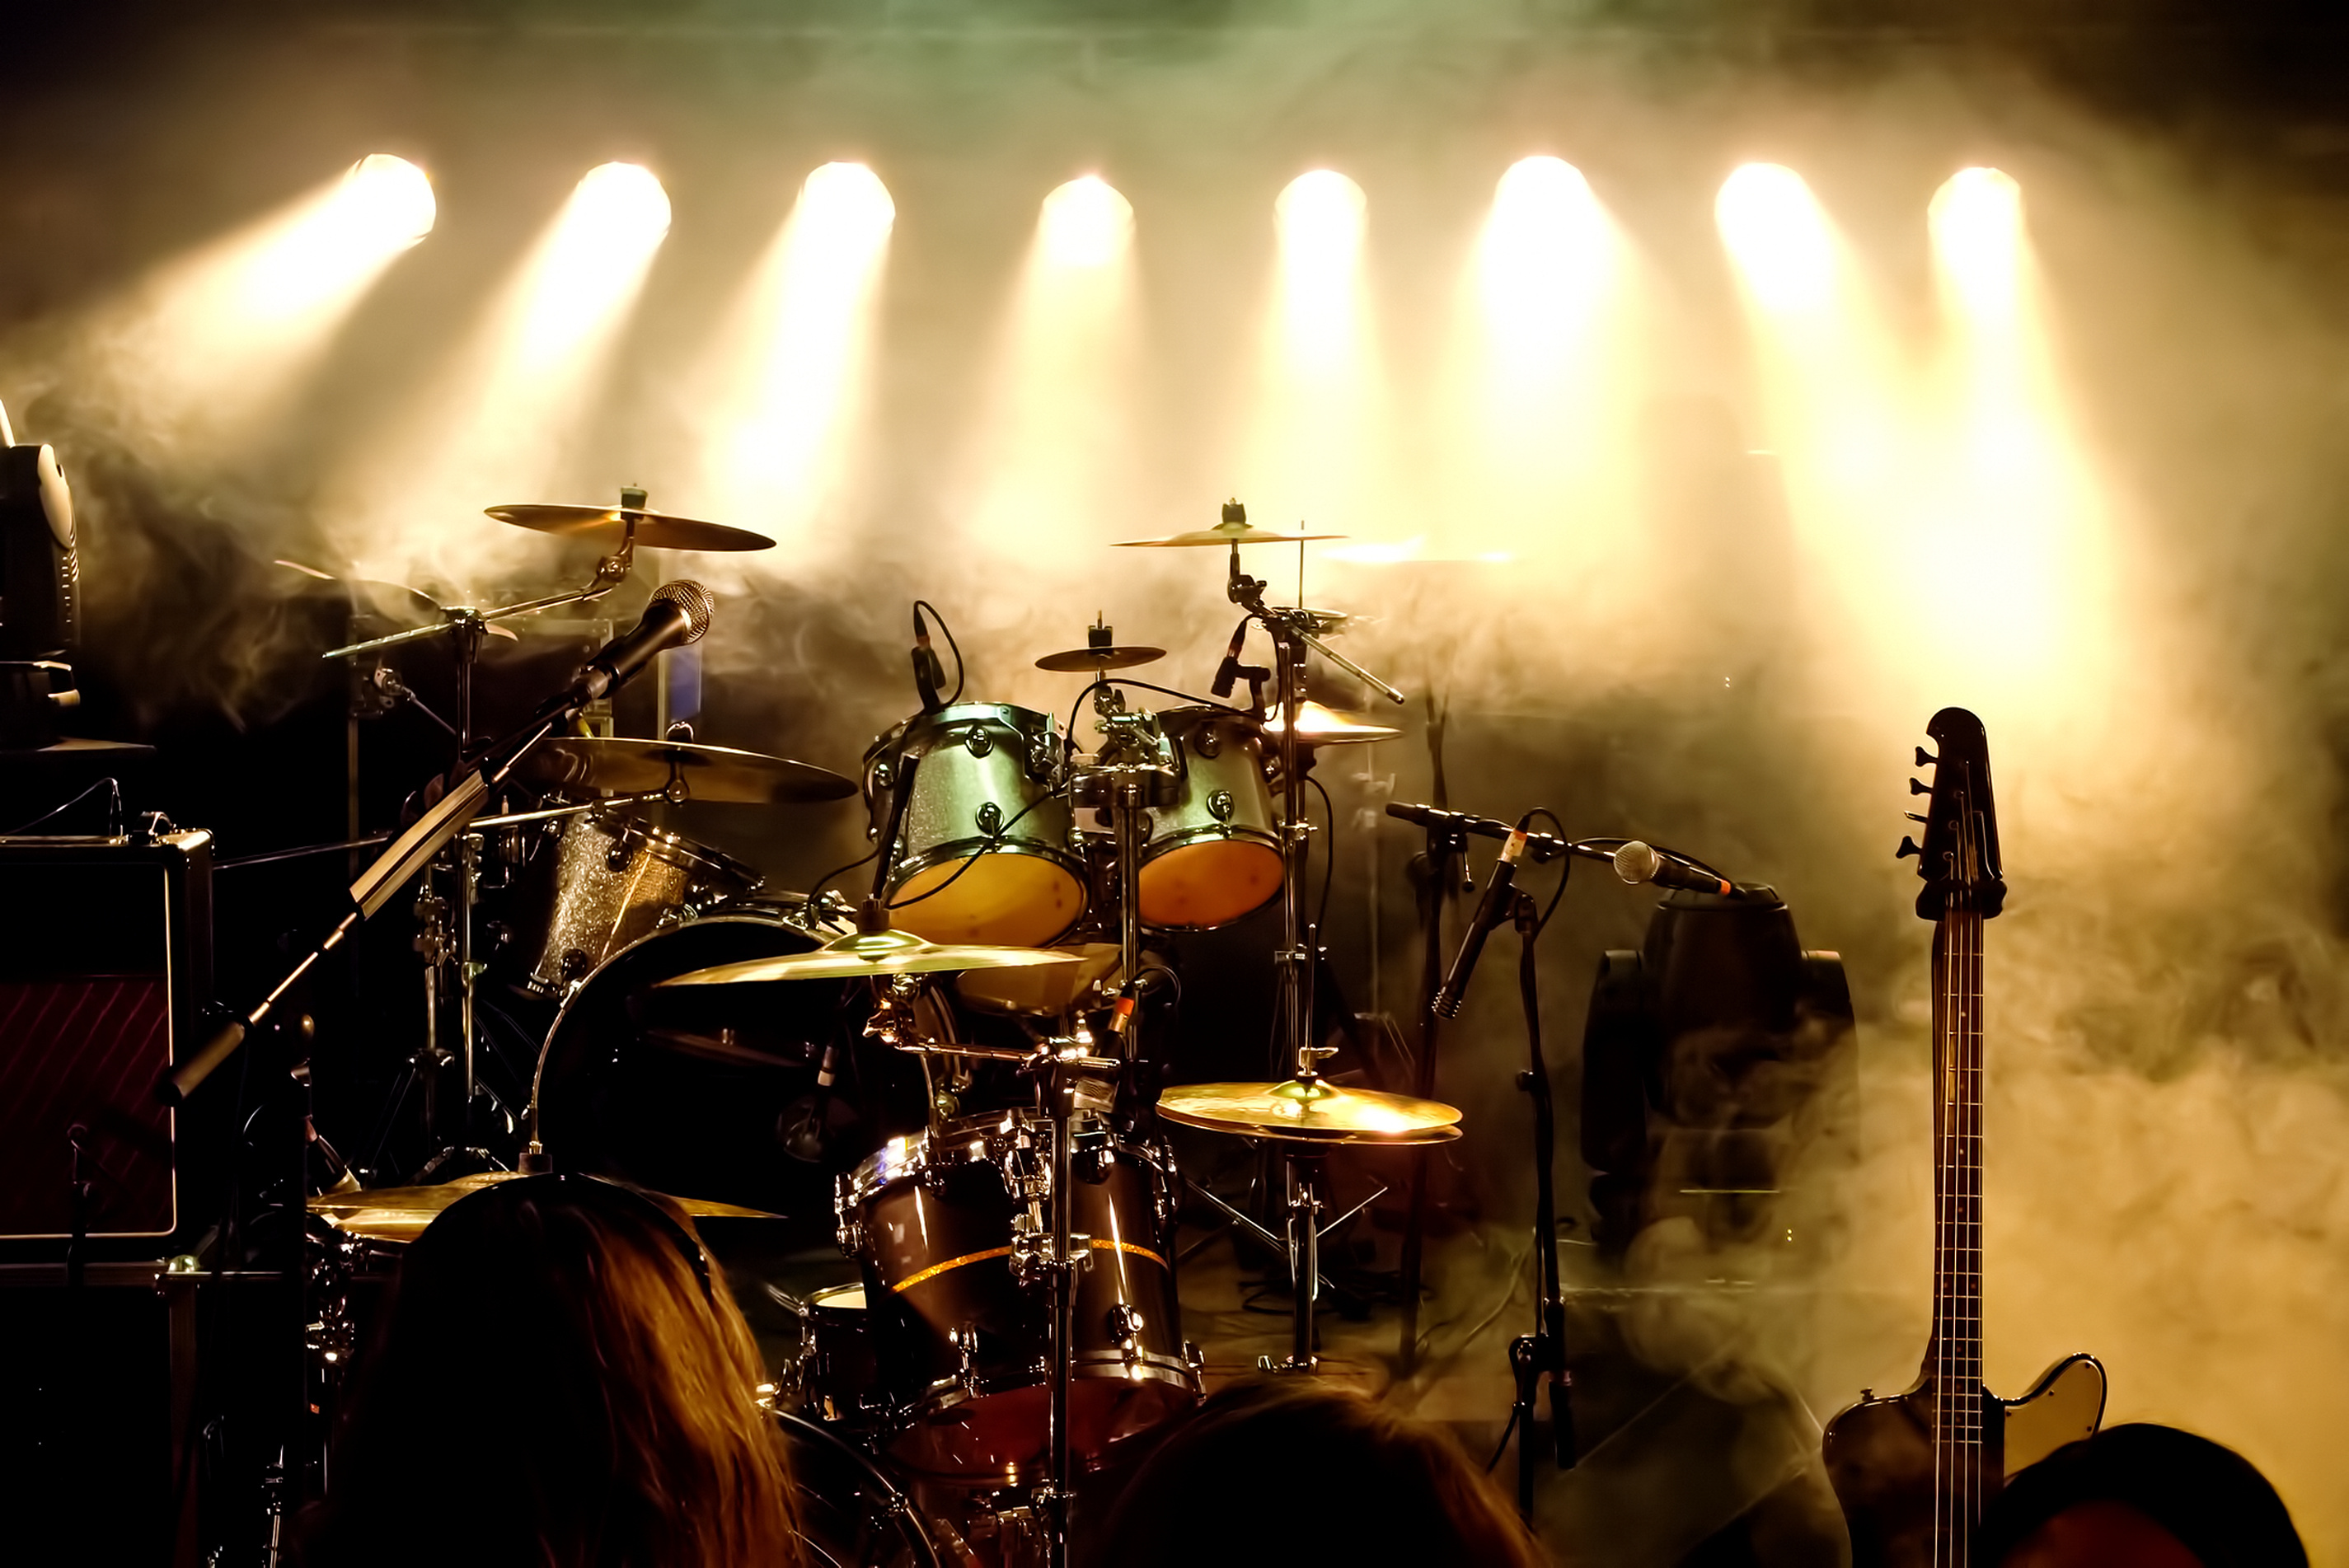 Drums on stage with back lighting